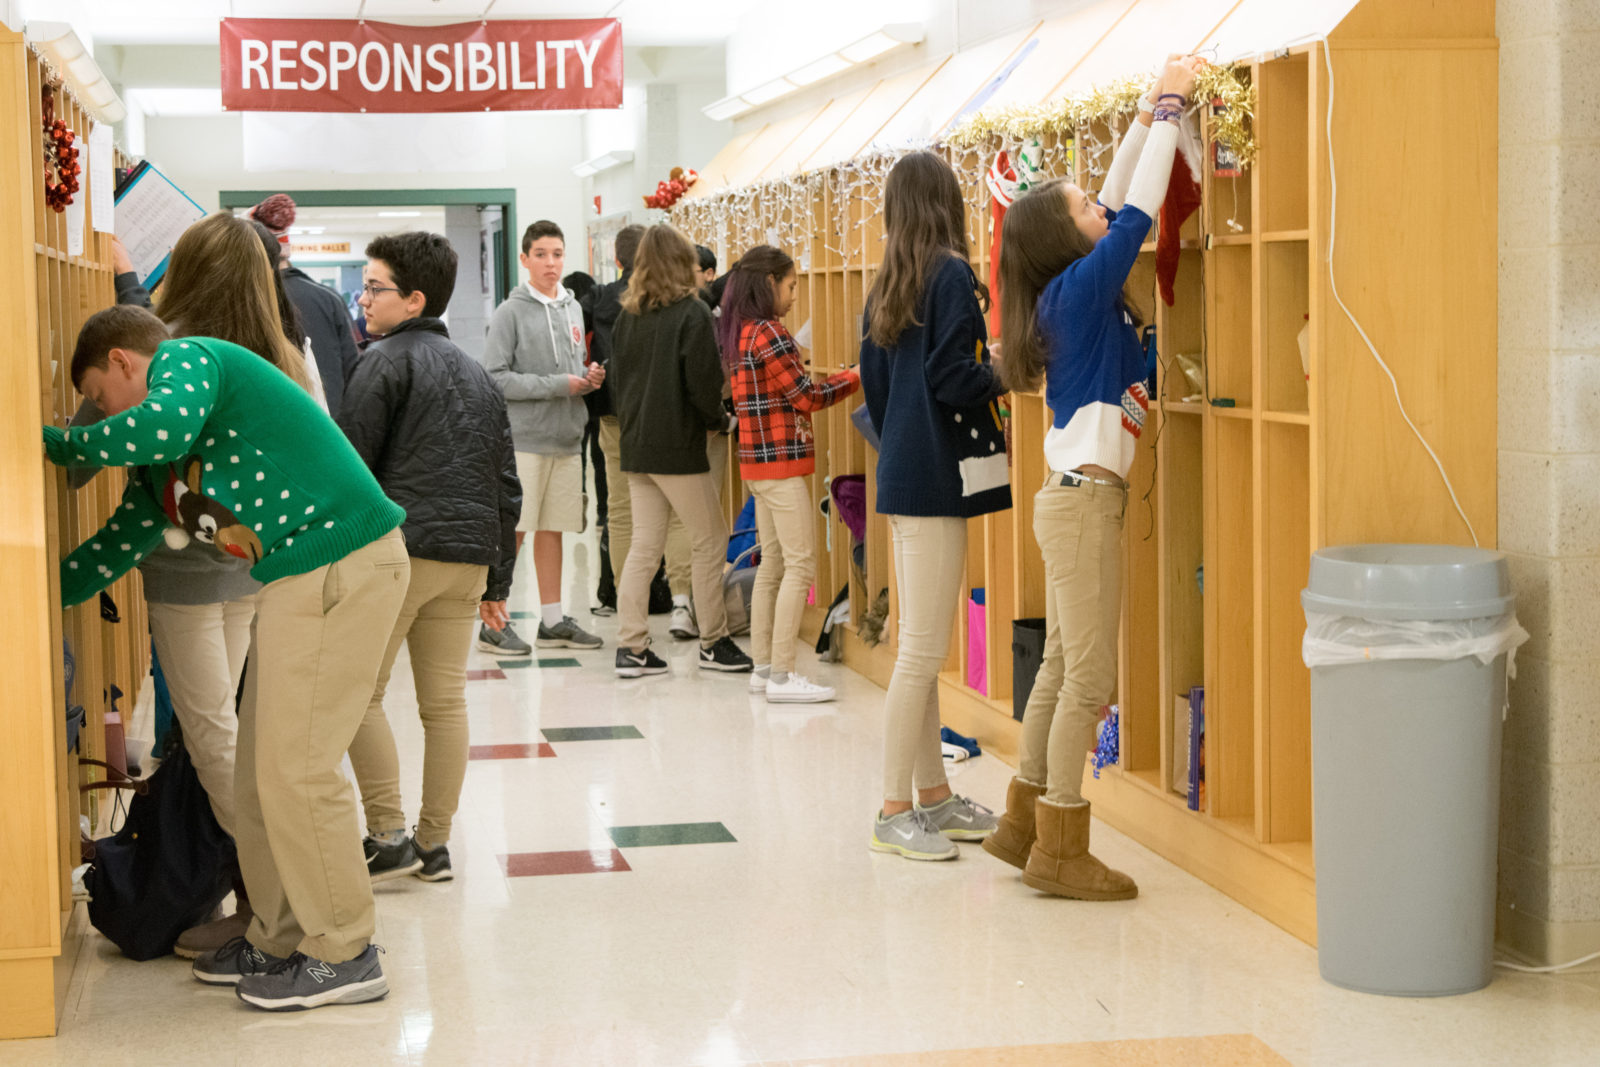 Students prepare for their day while hanging holiday decorations on their lockers.